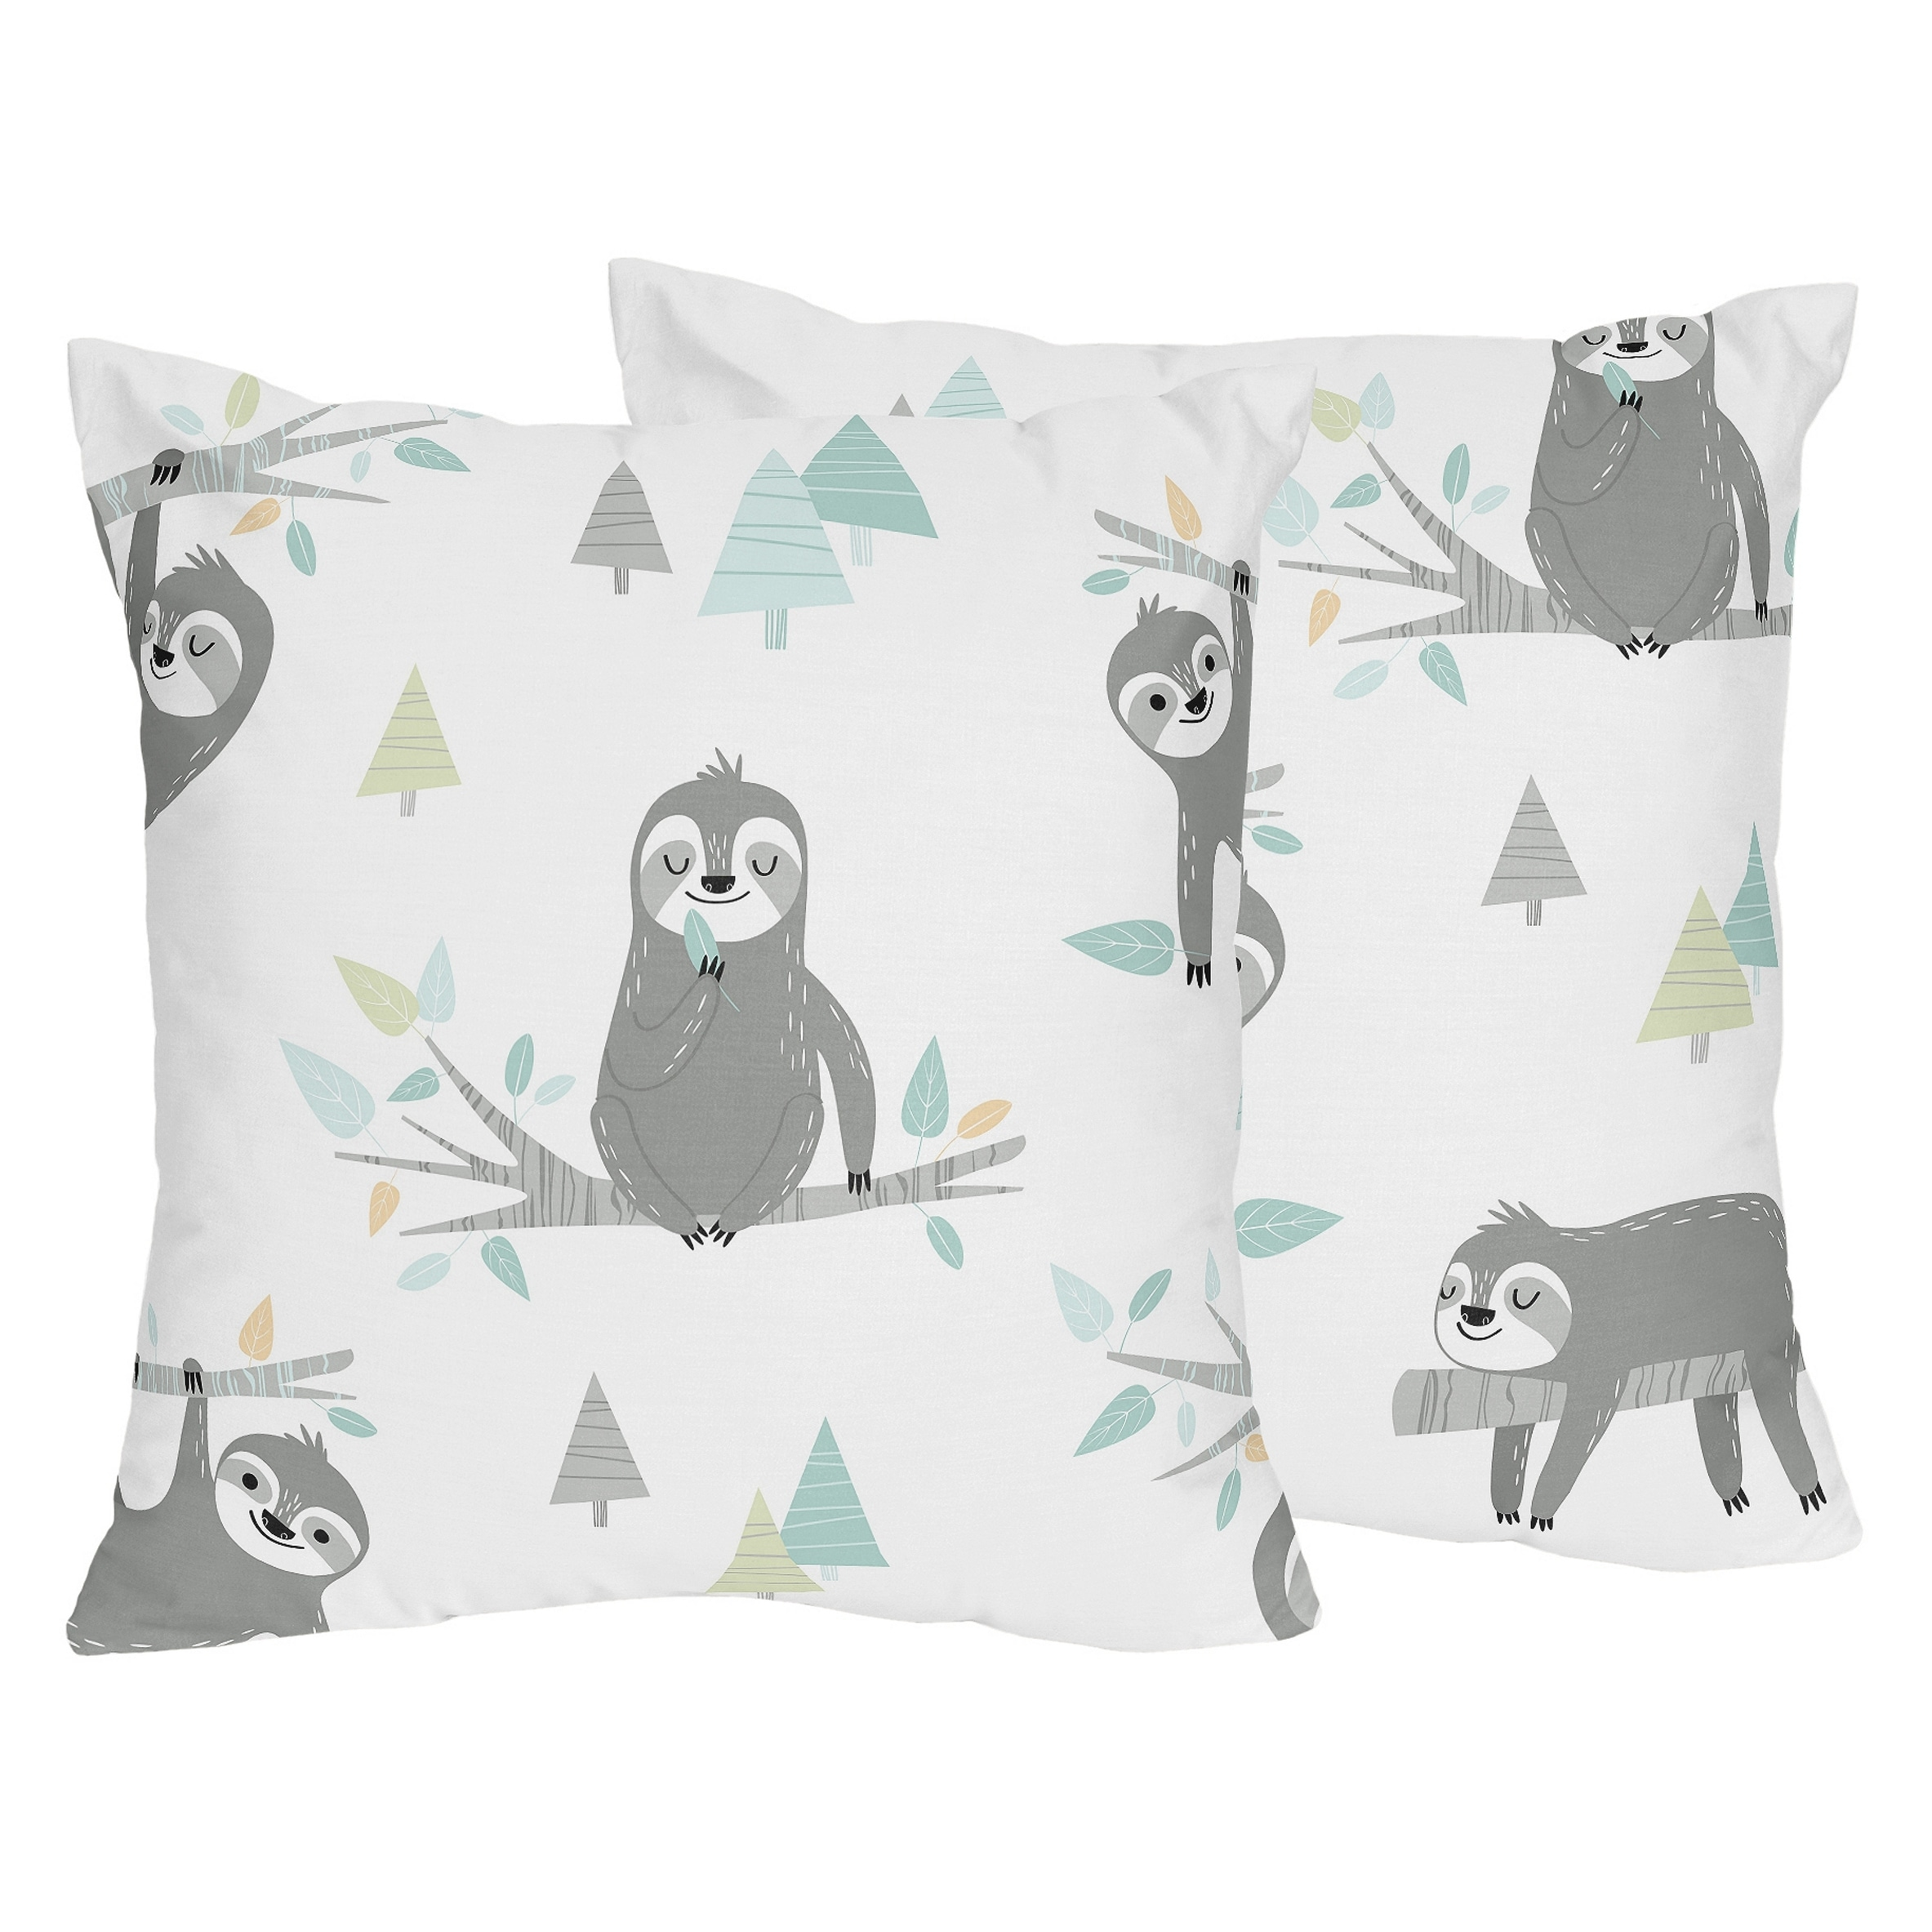 Sweet Jojo Designs Blue Grey Jungle Sloth Leaf 18in Decorative Accent Throw Pillows Set Of 2 Turquoise Gray Green Rainforest Overstock 29900578